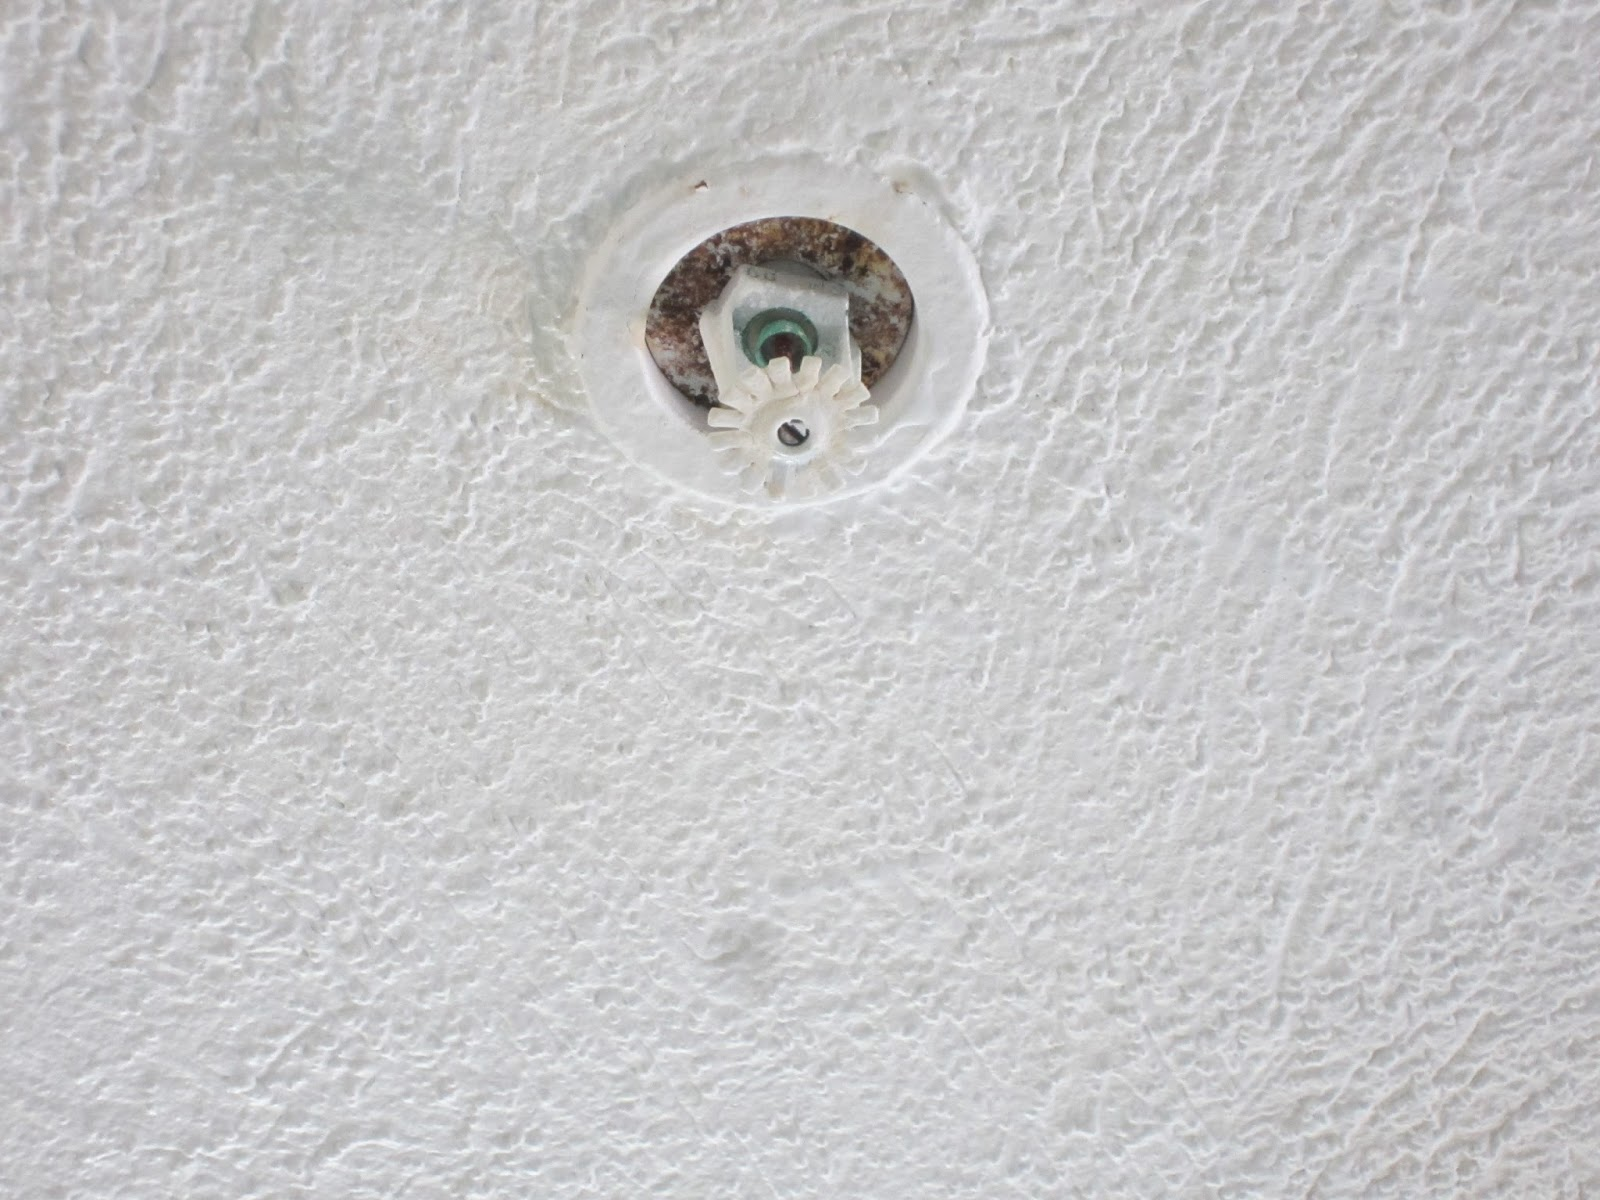 Fire Protection Deficiencies Corroded Fire Sprinkler Heads